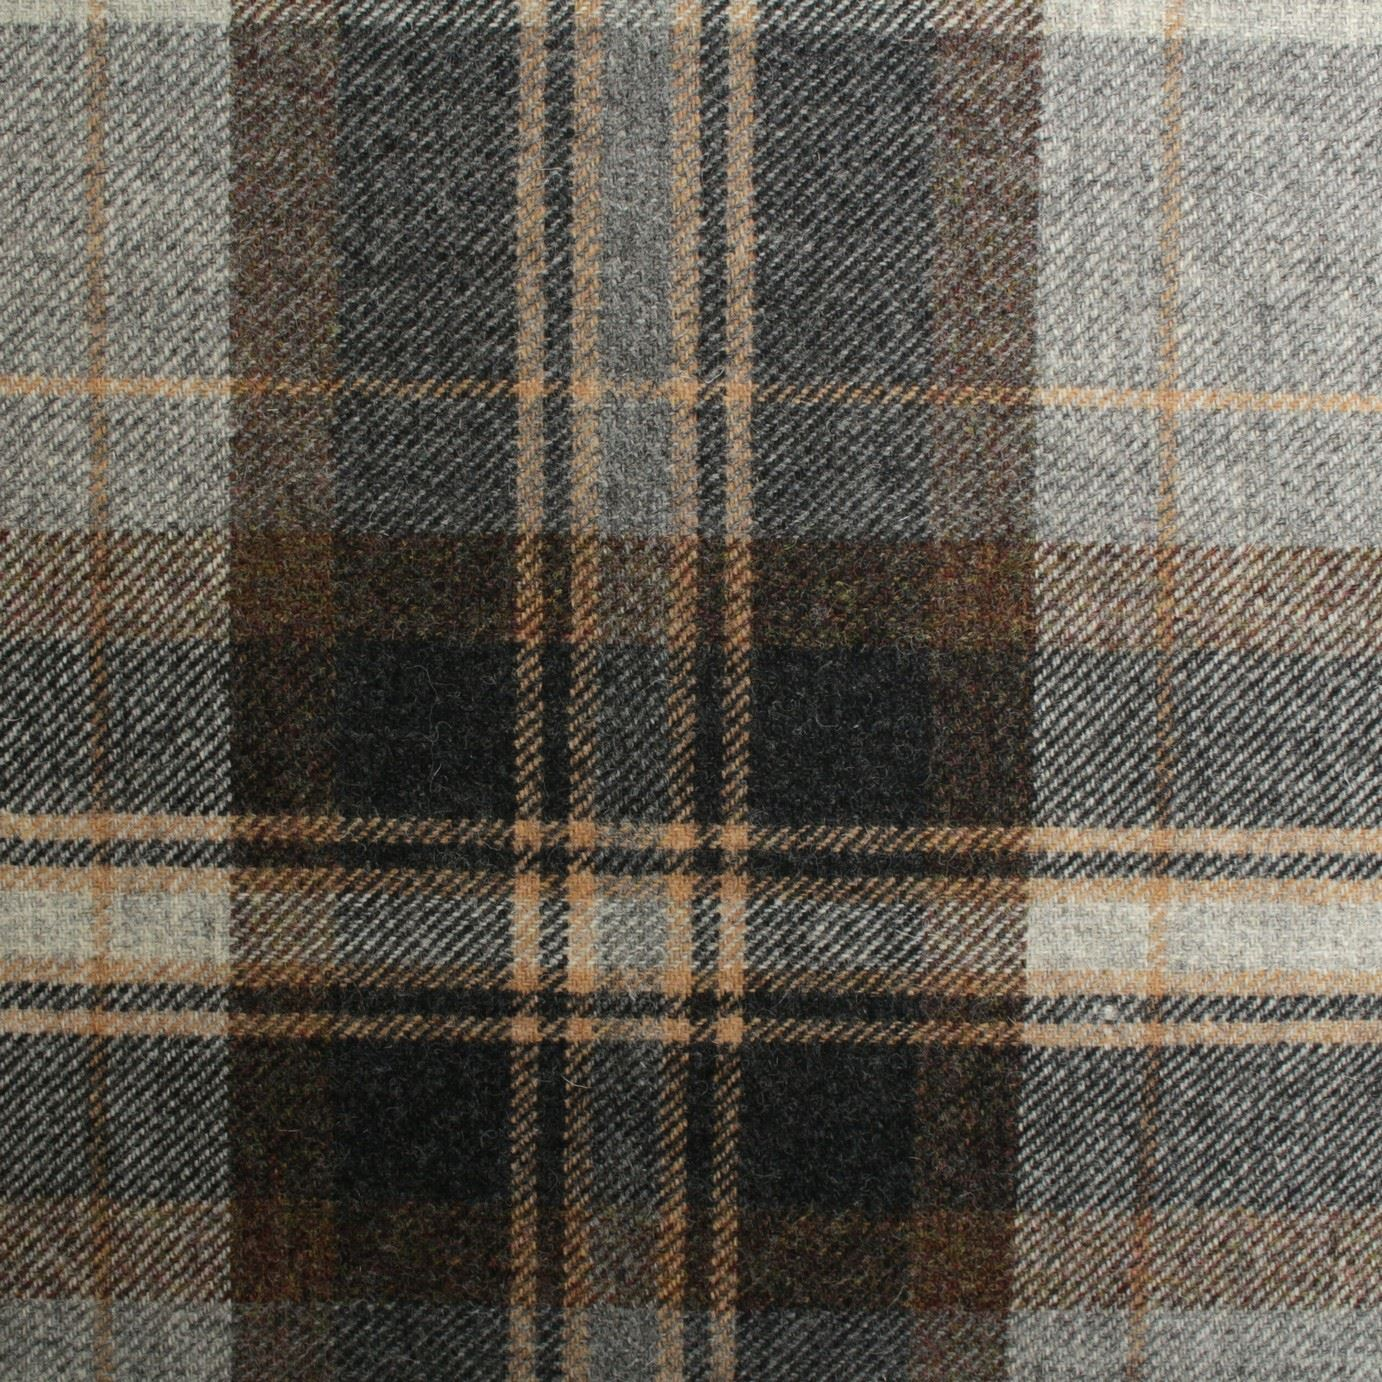 Production Twill Checks